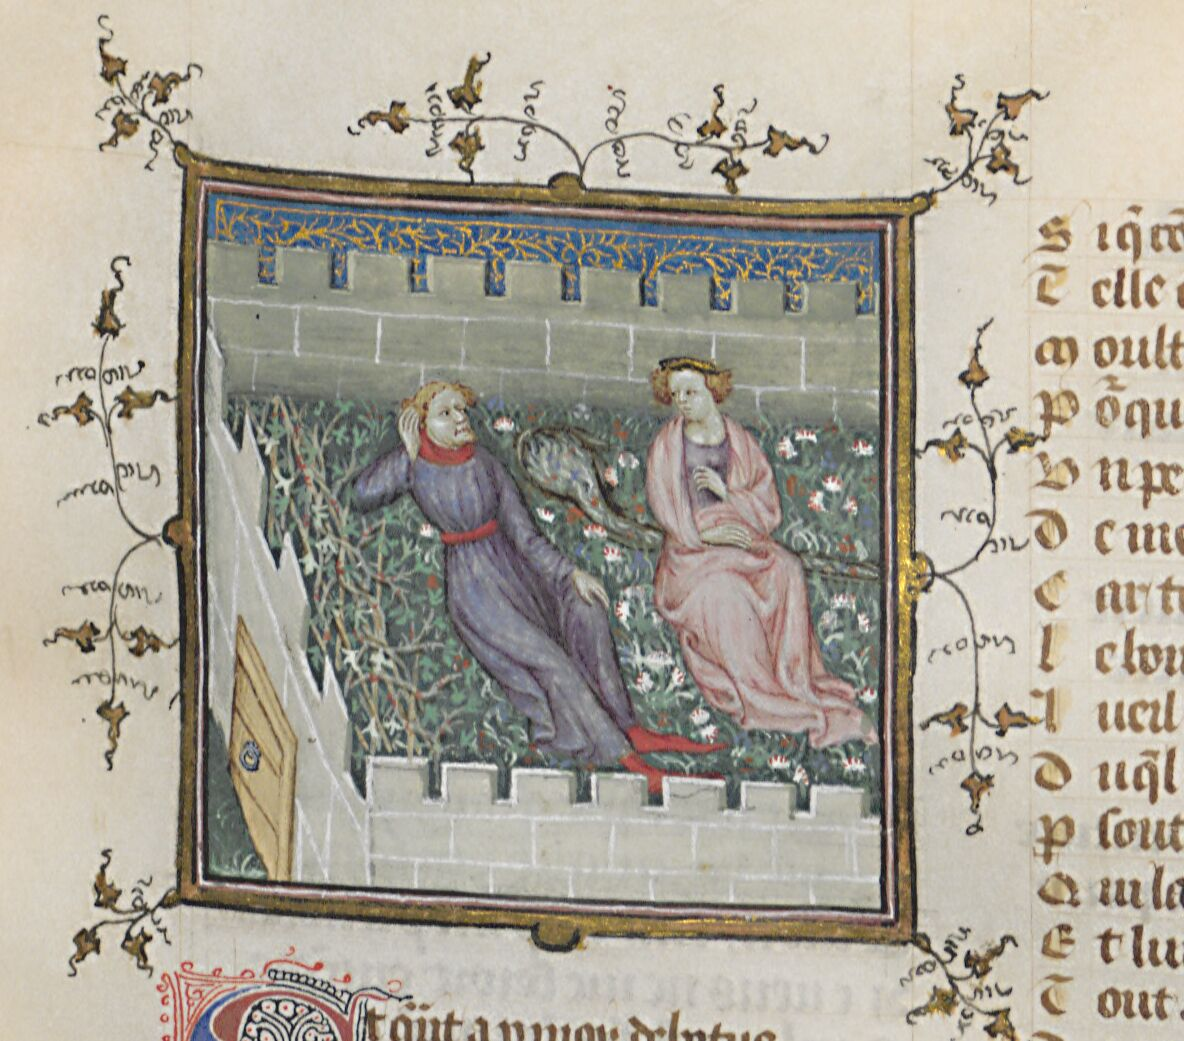 Machaut's garden of Love